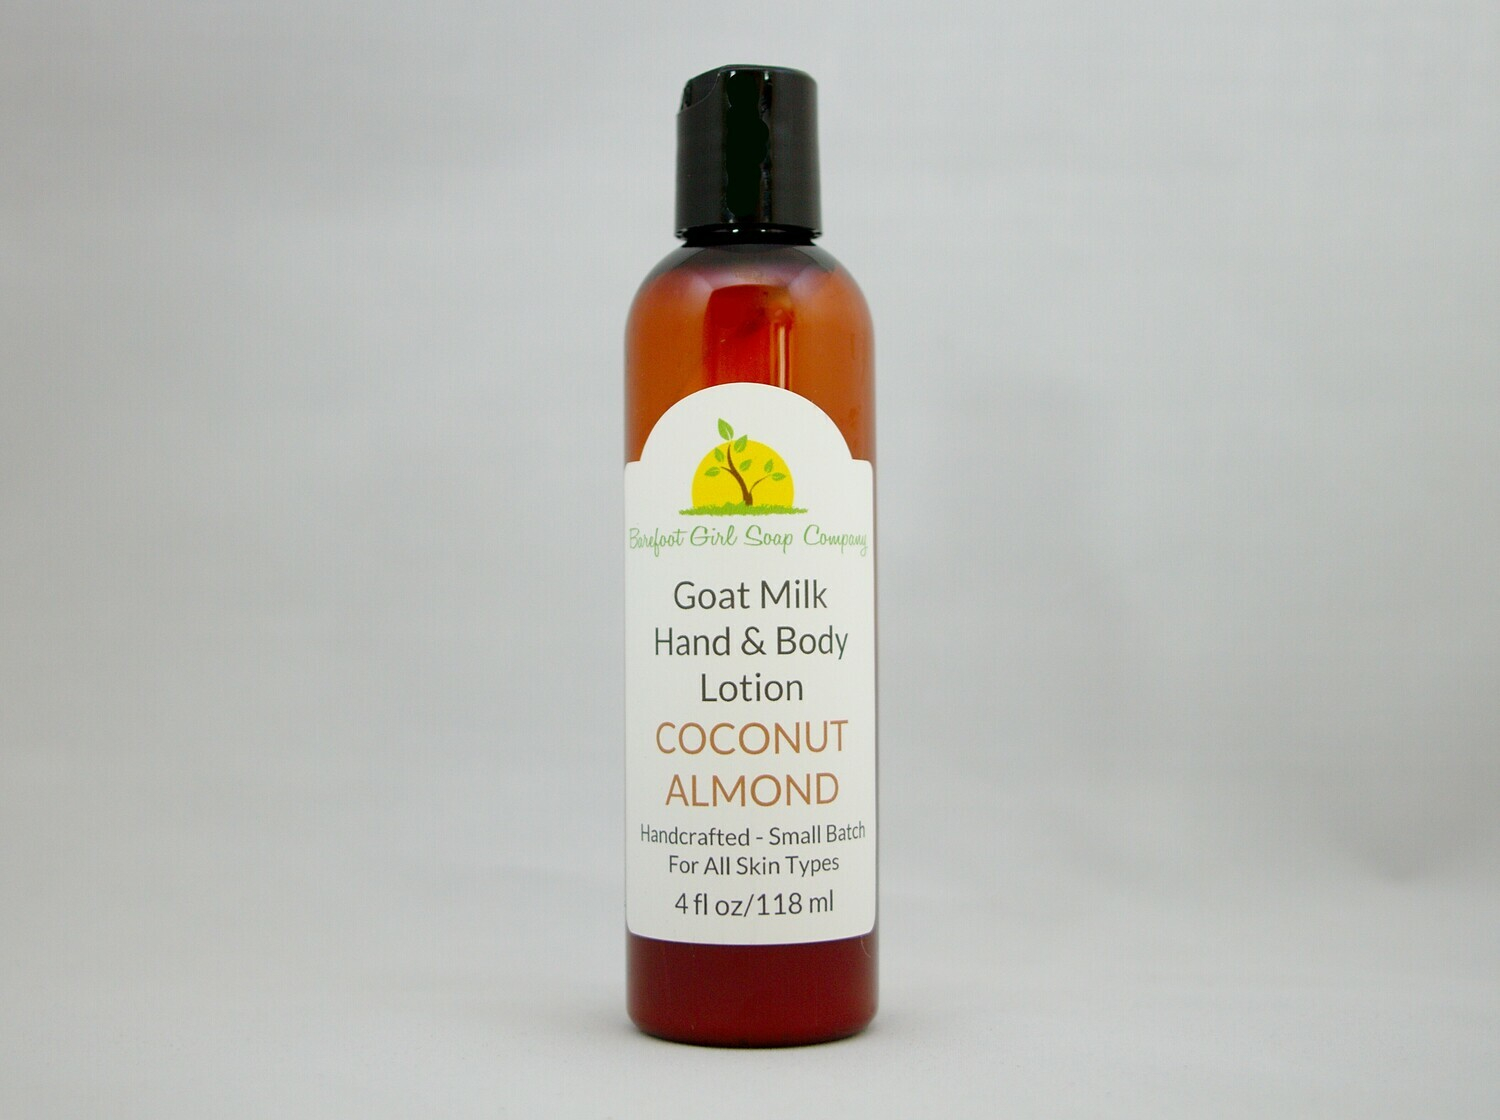 Coconut Almond Lotion